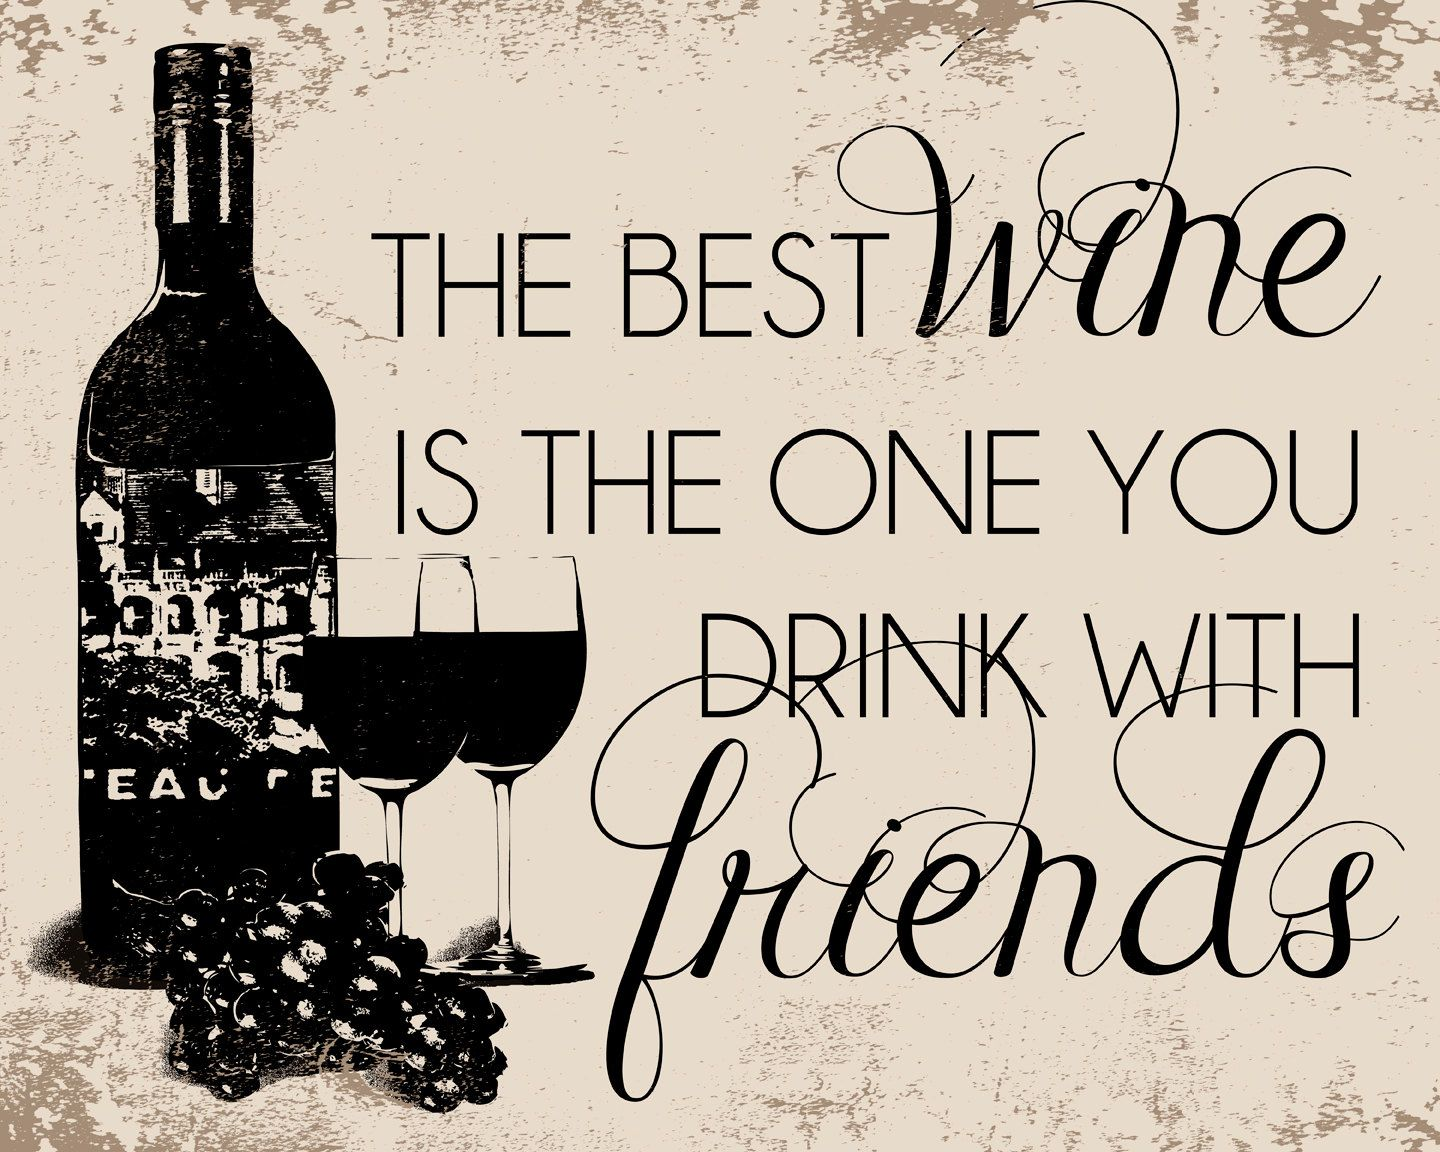 Quotes About Wine And Friendship Personalized Canvas Or Prints Wine Andsimplyshinedesigns